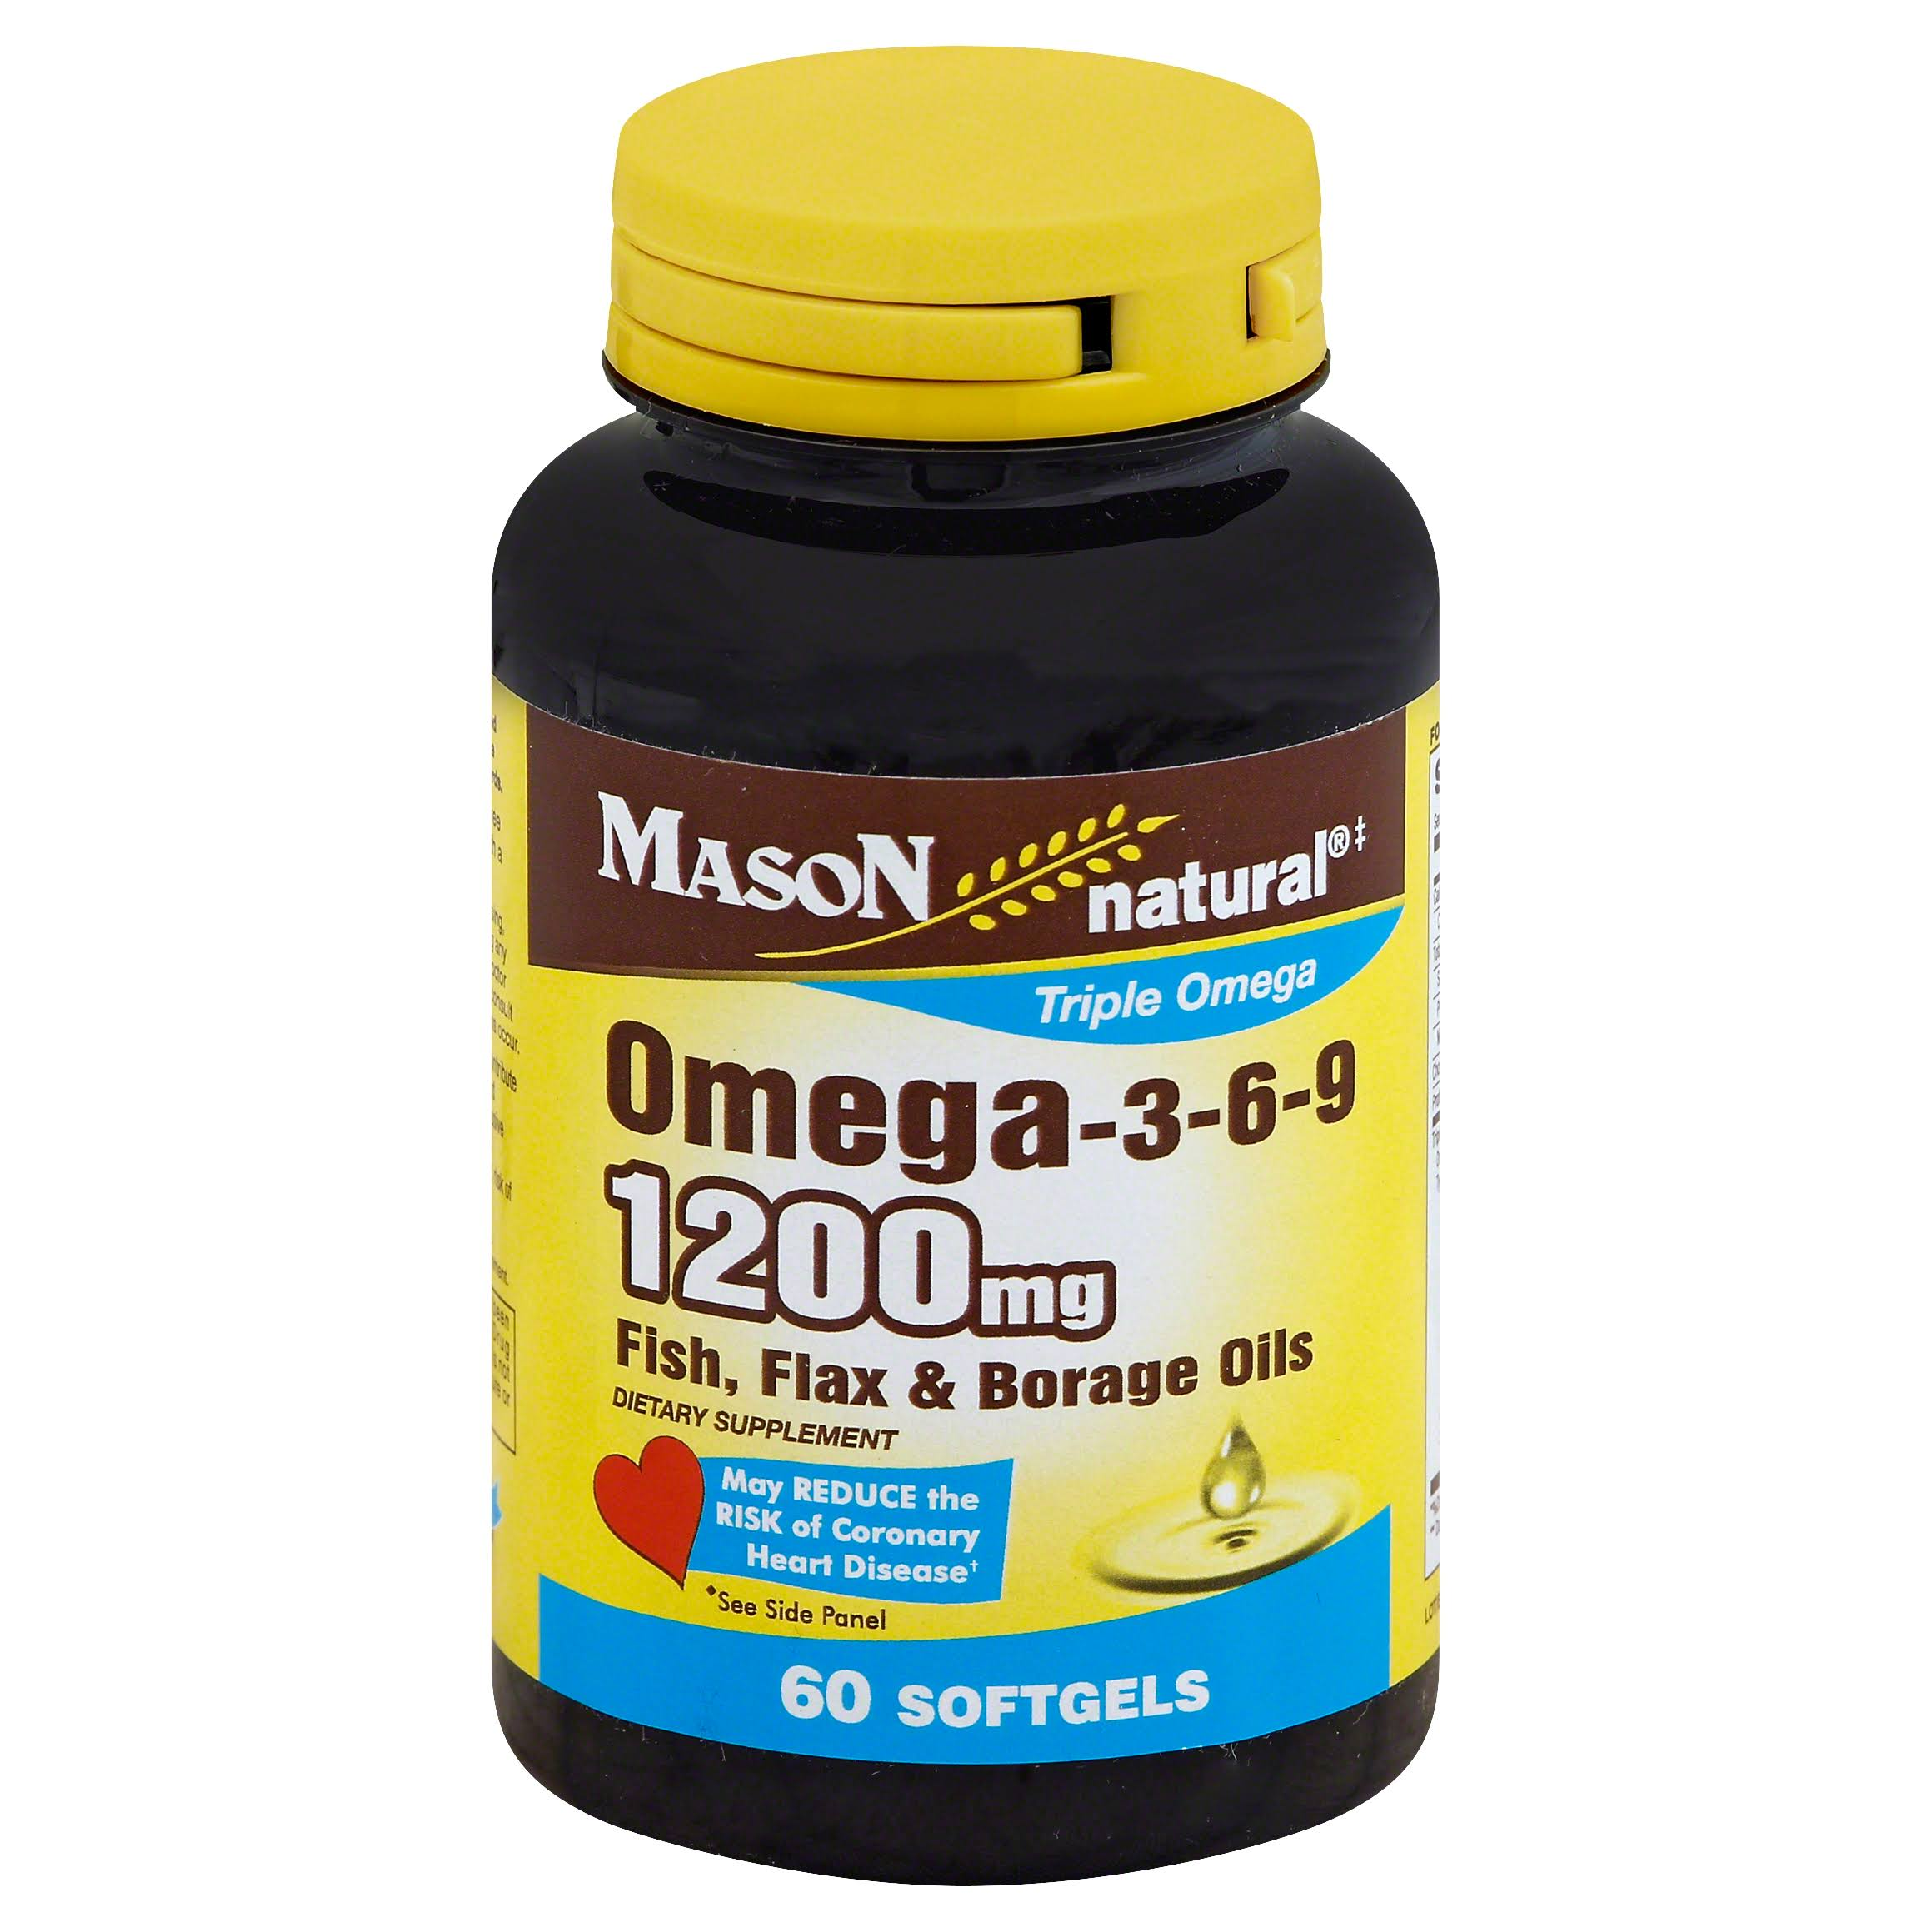 Mason Natural Omega-3-6-9 1200mg Softgels - x60